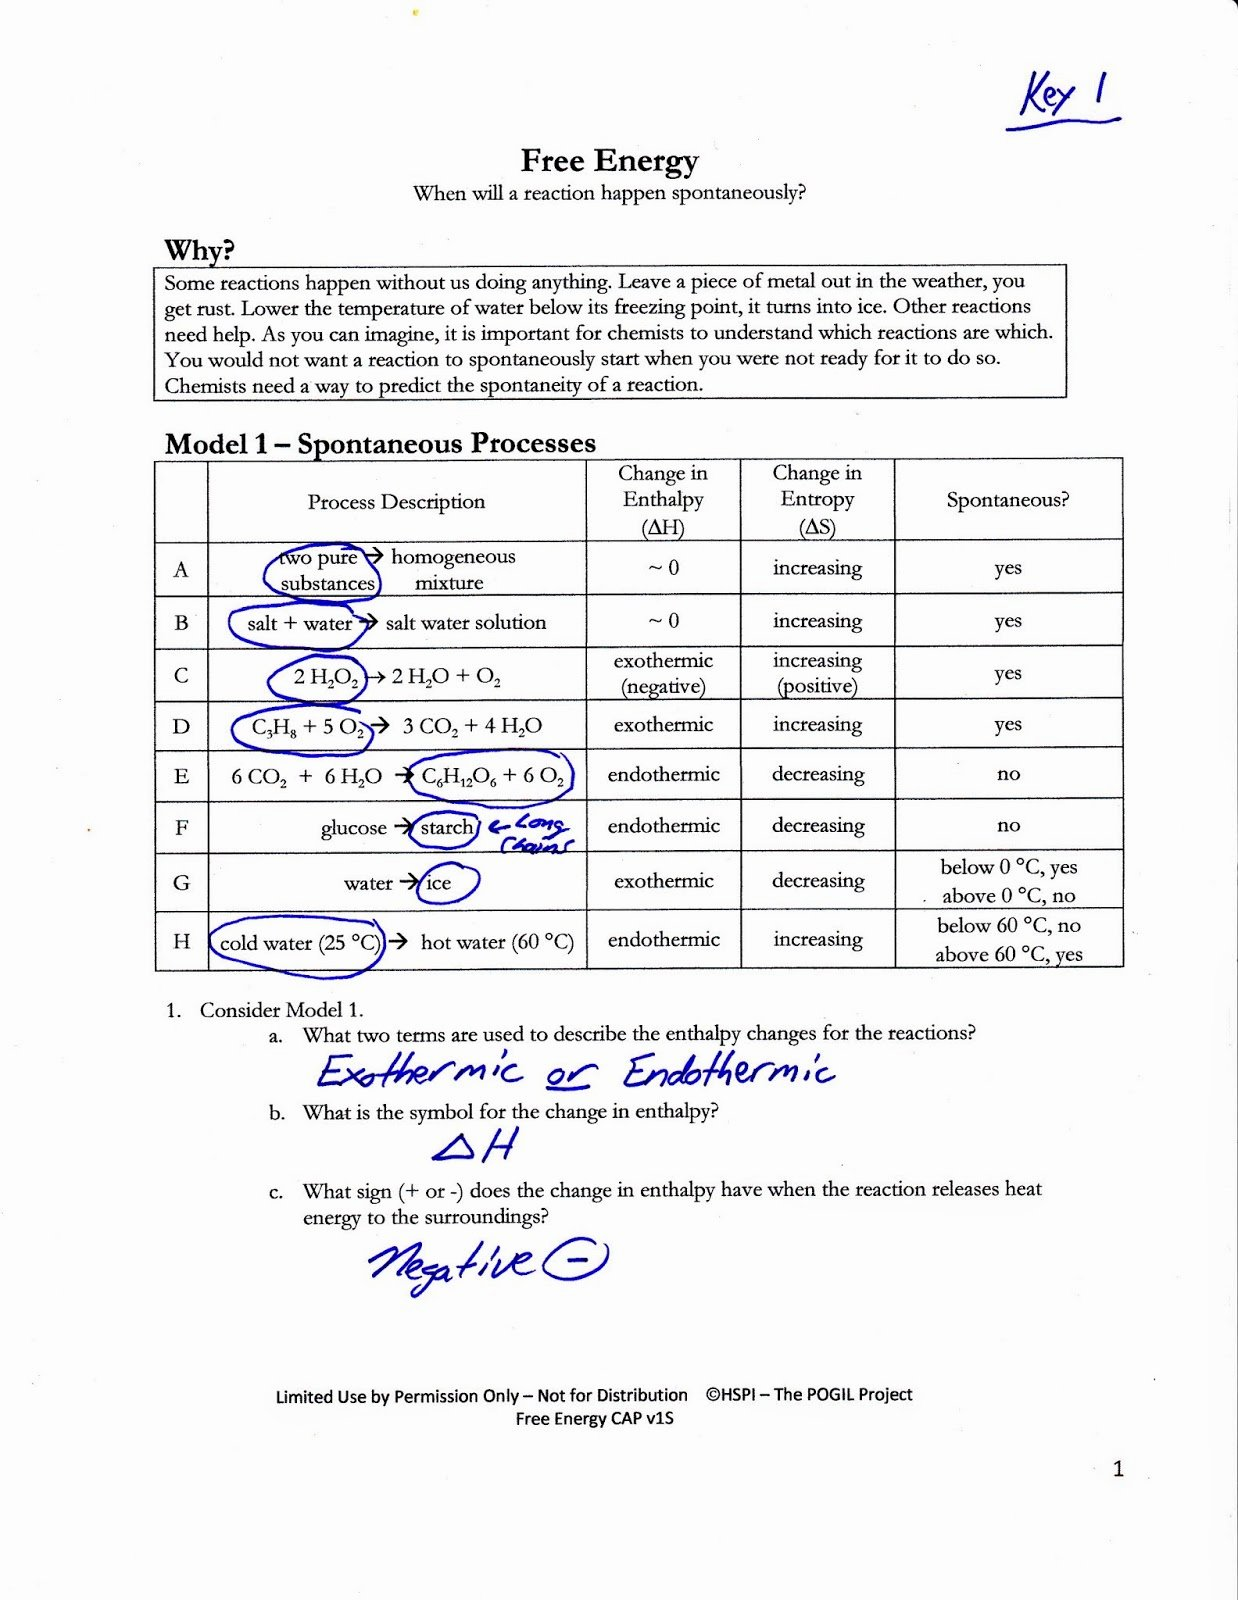 Bill Nye Chemical Reactions Worksheet Elegant Energy Model Worksheet 3 Answers